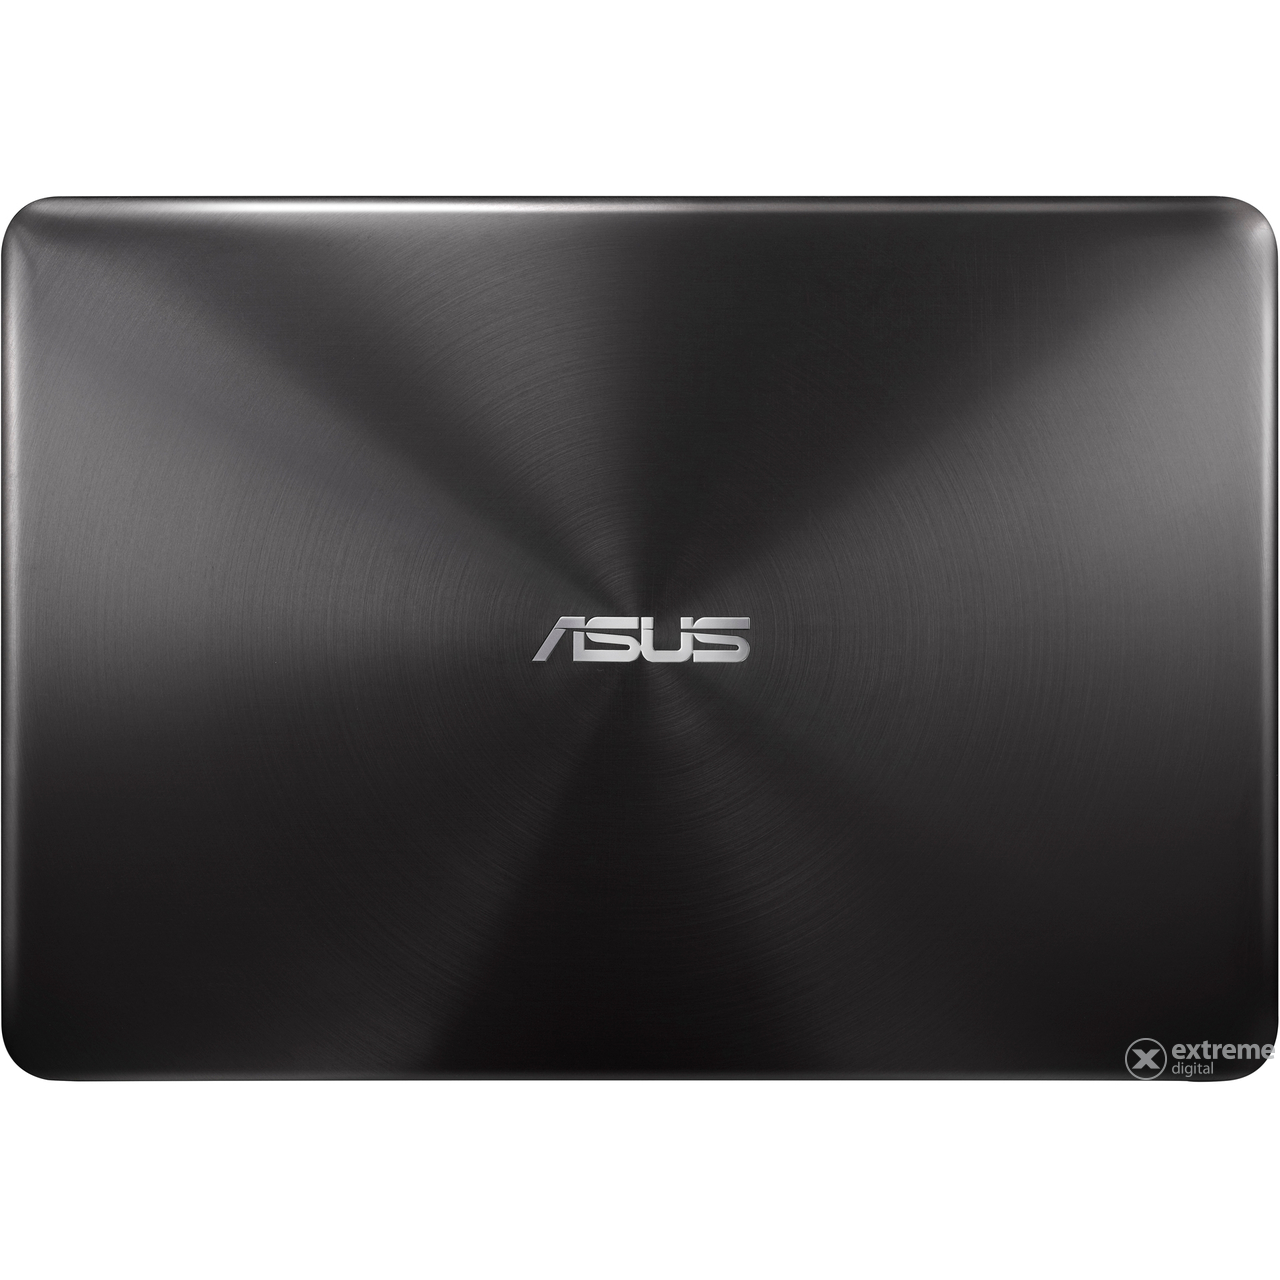 asus-zenbook-ux305la-fb019t-notebook-windows-10-fekete_4c4889d5.jpg